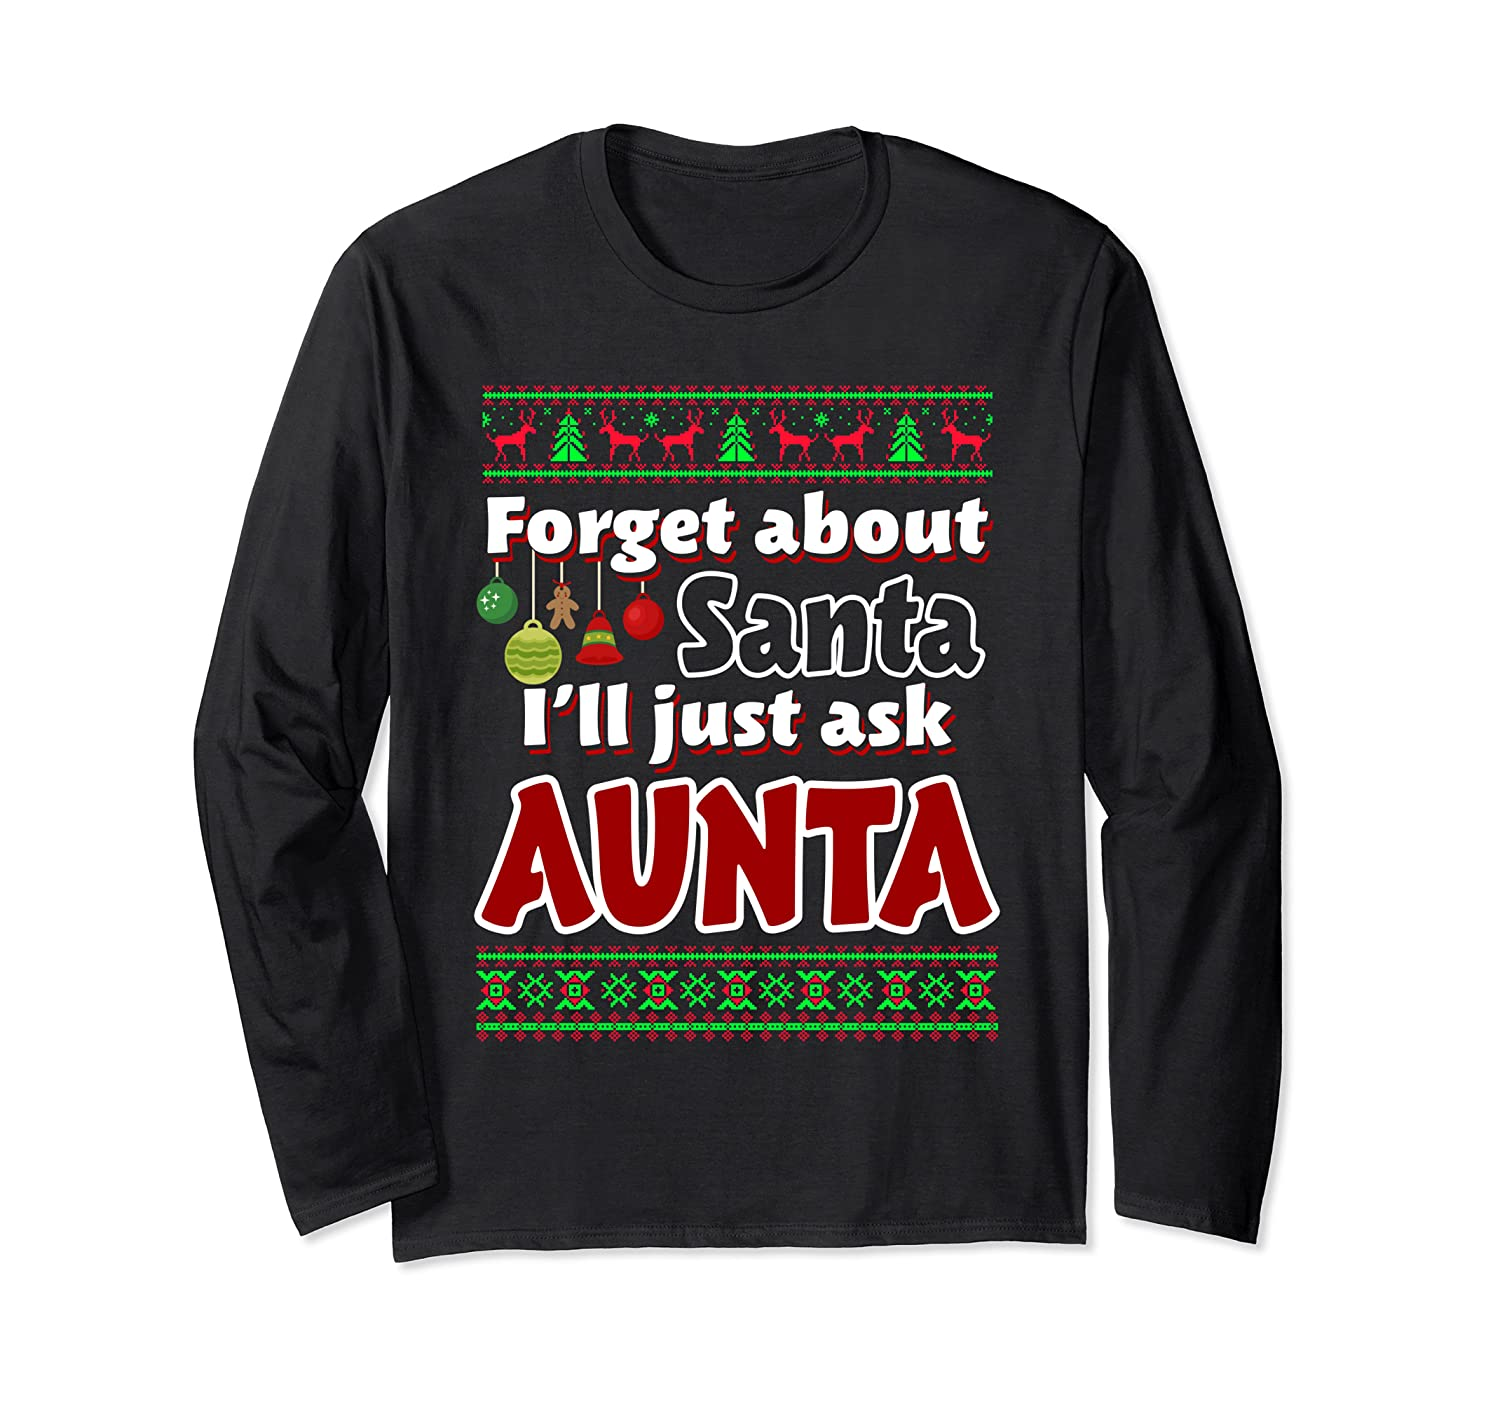 Forget About Santa I'll Just Ask Aunta Funny Christmas Long Sleeve T-Shirt